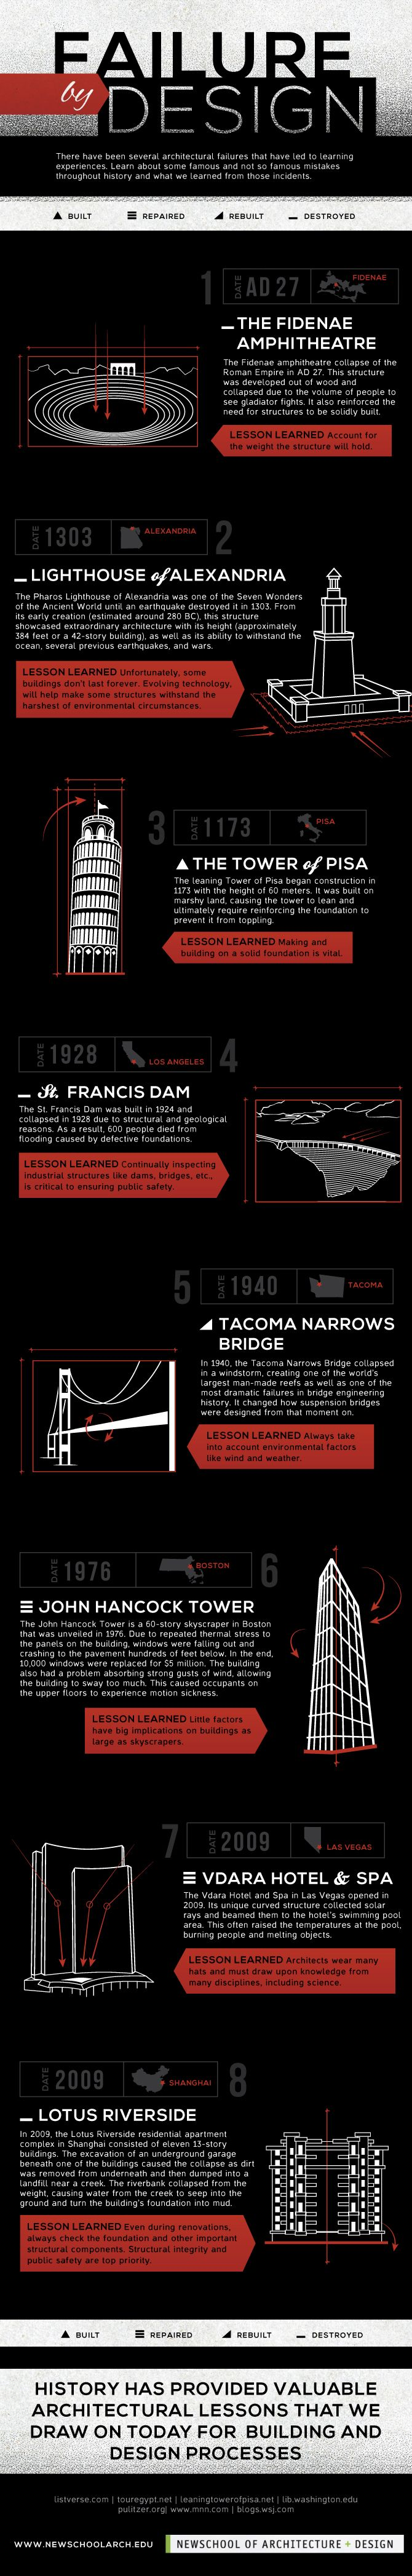 Failure by Design: 8 Of HIstory's Biggest Design Failures #infographic